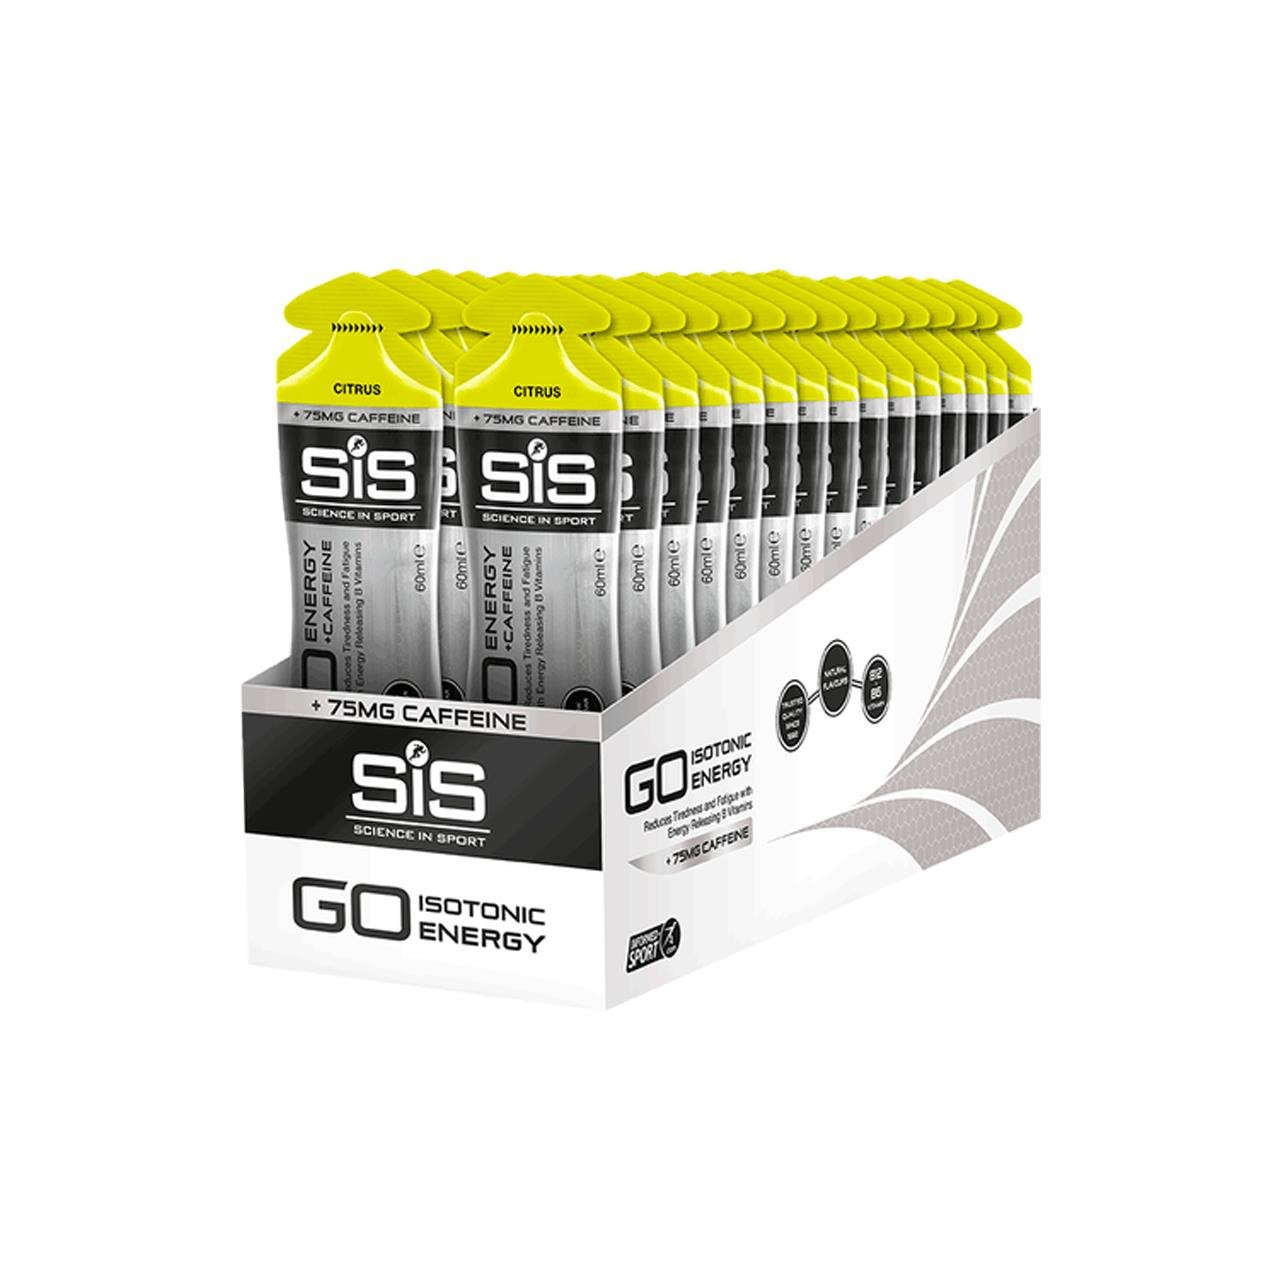 Science In Sport GO + Caffeine Gel, 30 Pack (Citrus)